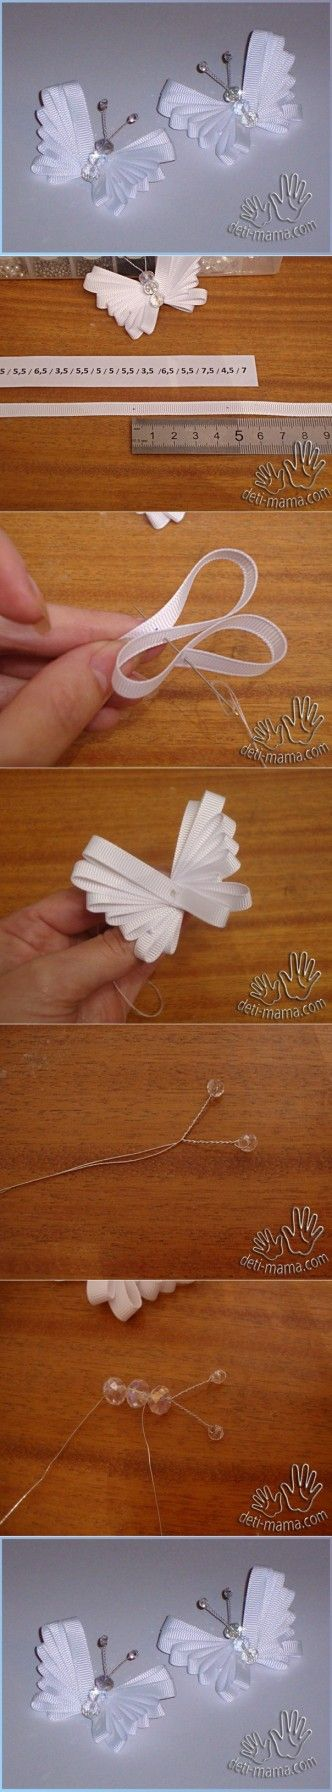 DIY ribbon butterfly Instructions with Picture Tutorial